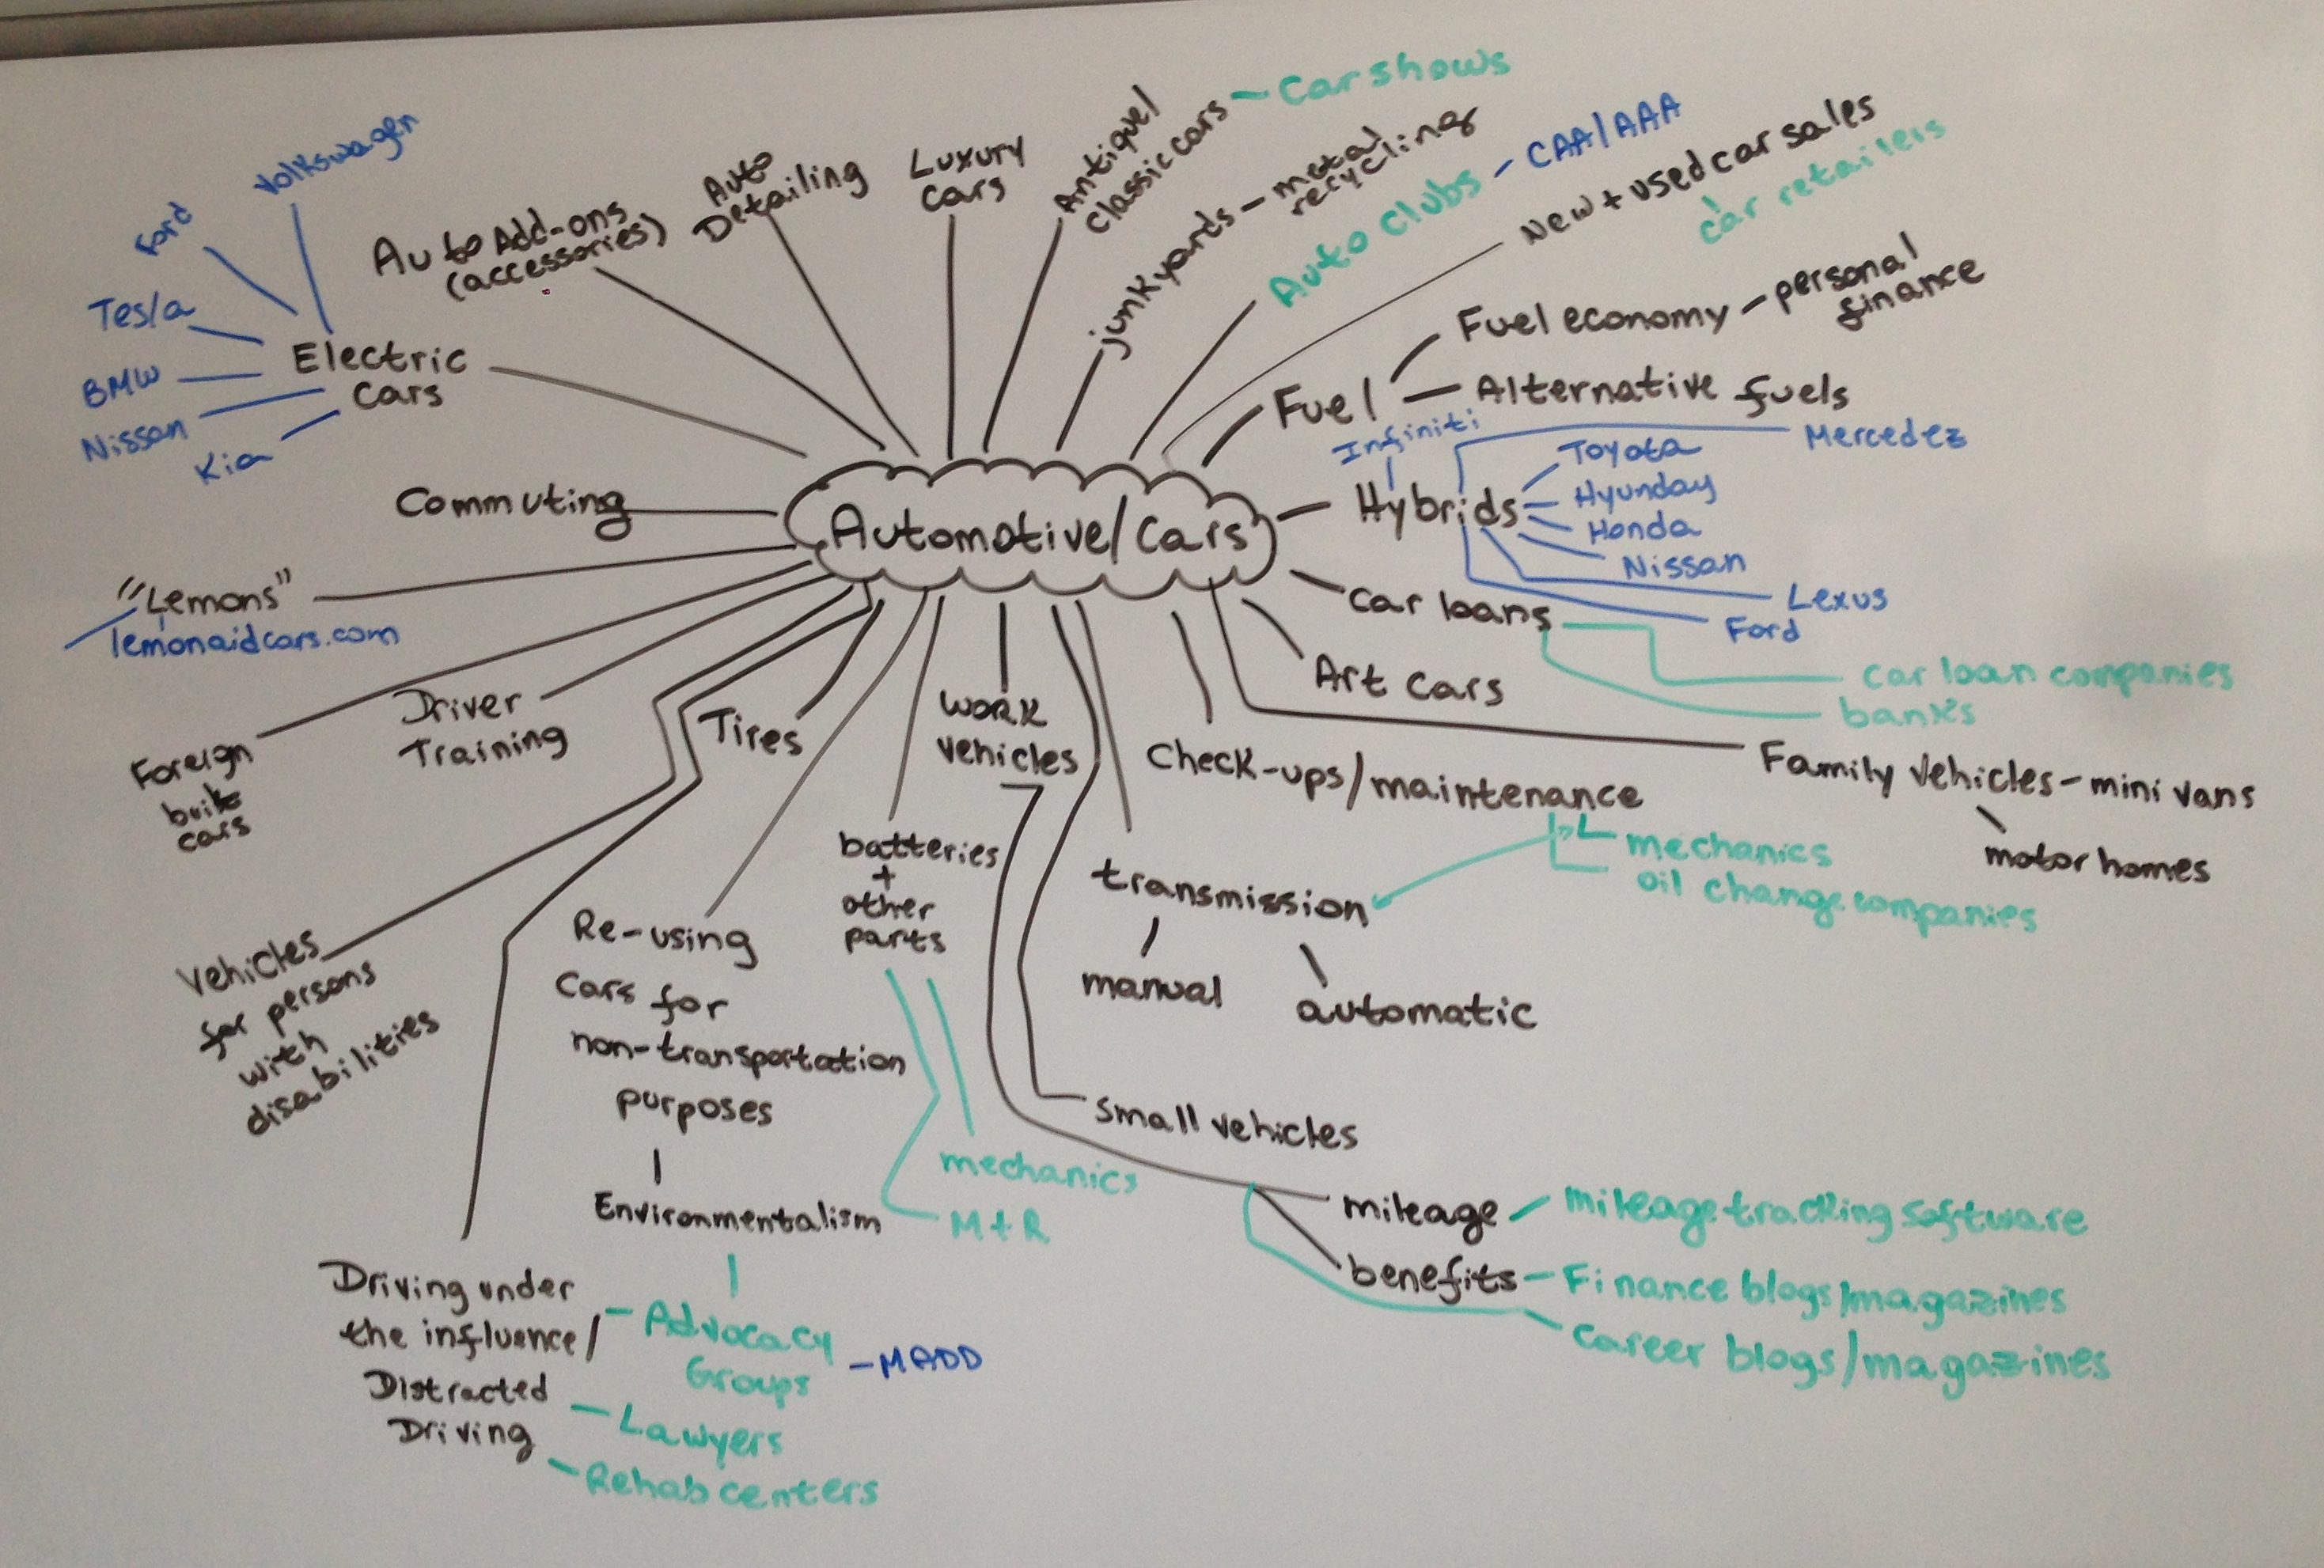 A mind map showing how automotive/cars niche can be diversified into many others.